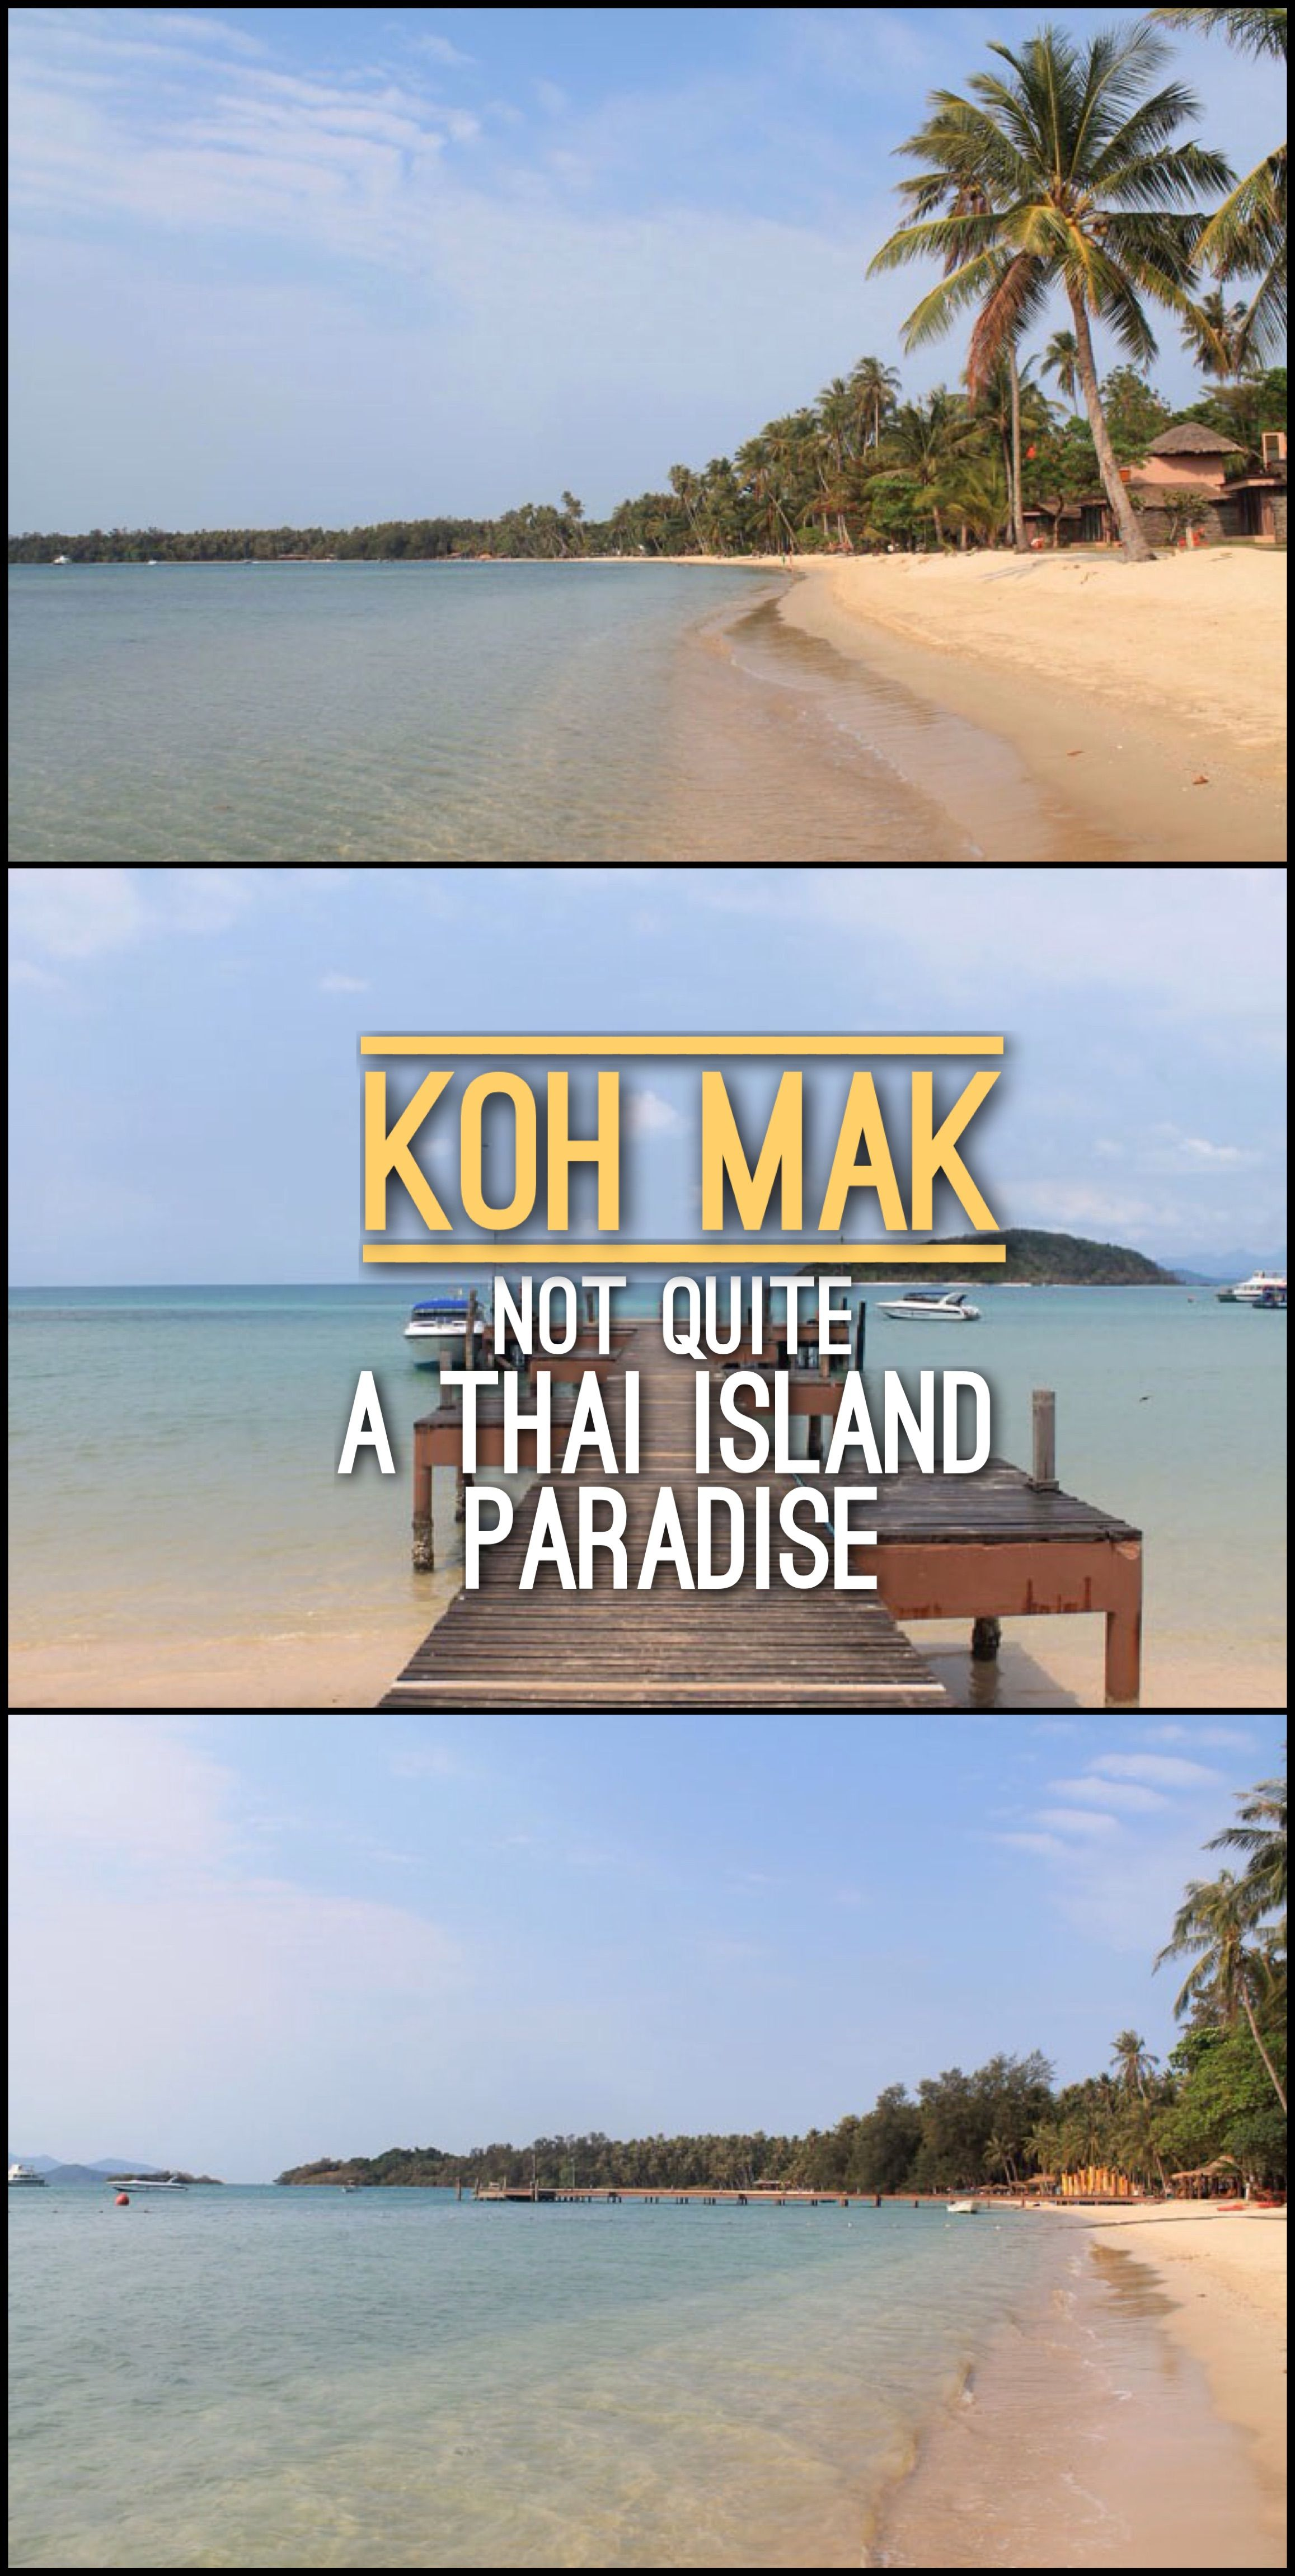 Looking for a Thai Island paradise? Koh Mak might not quite be it, but there is another island nearby that more than makes up for it!